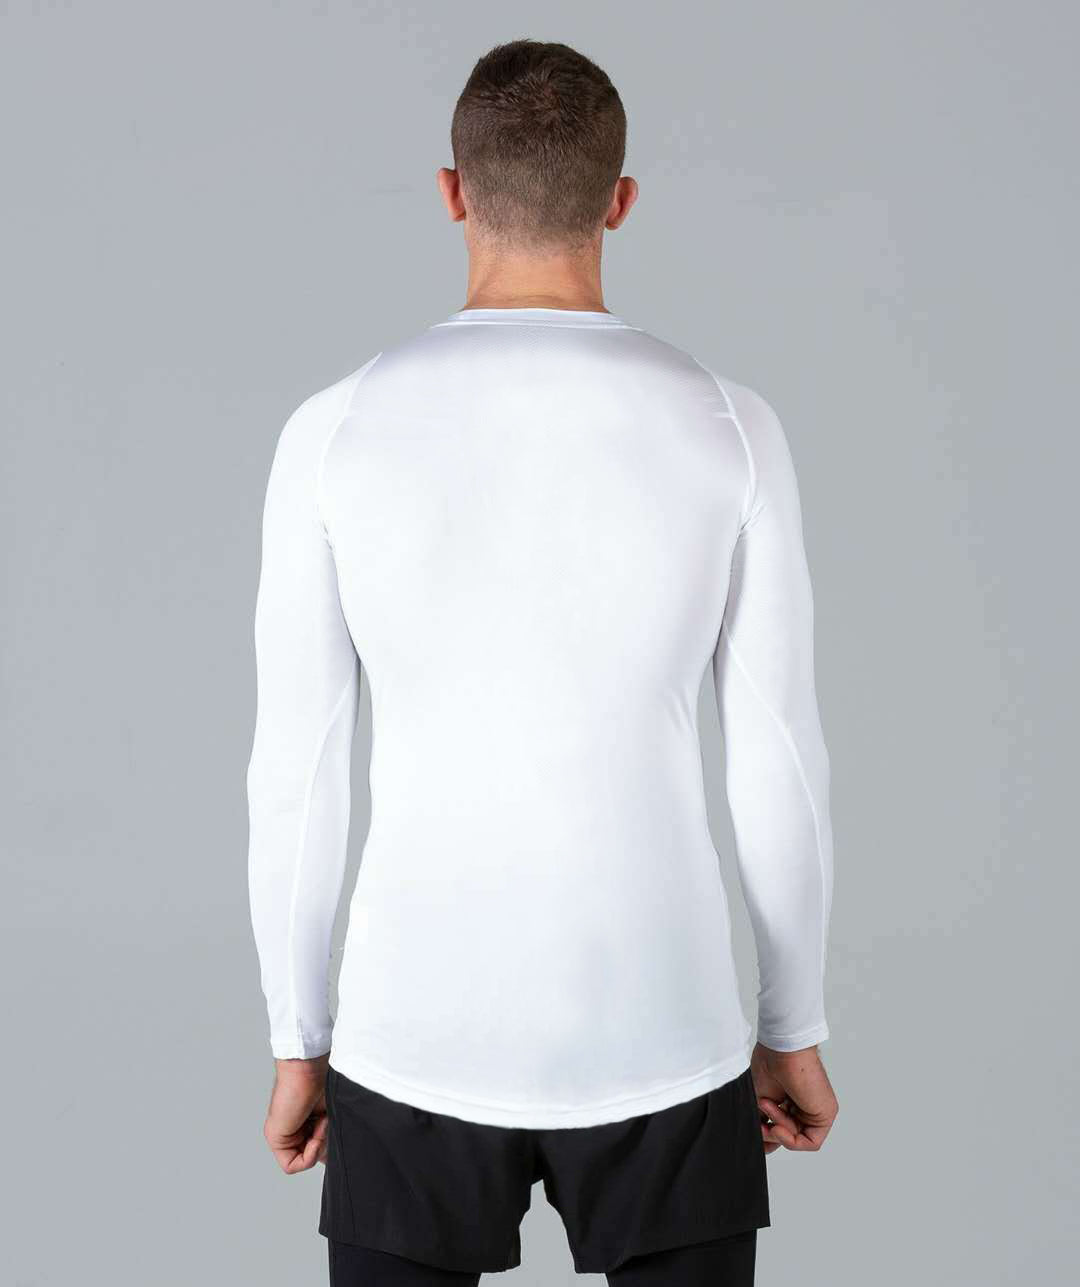 .Body Performance Long Sleeve - White